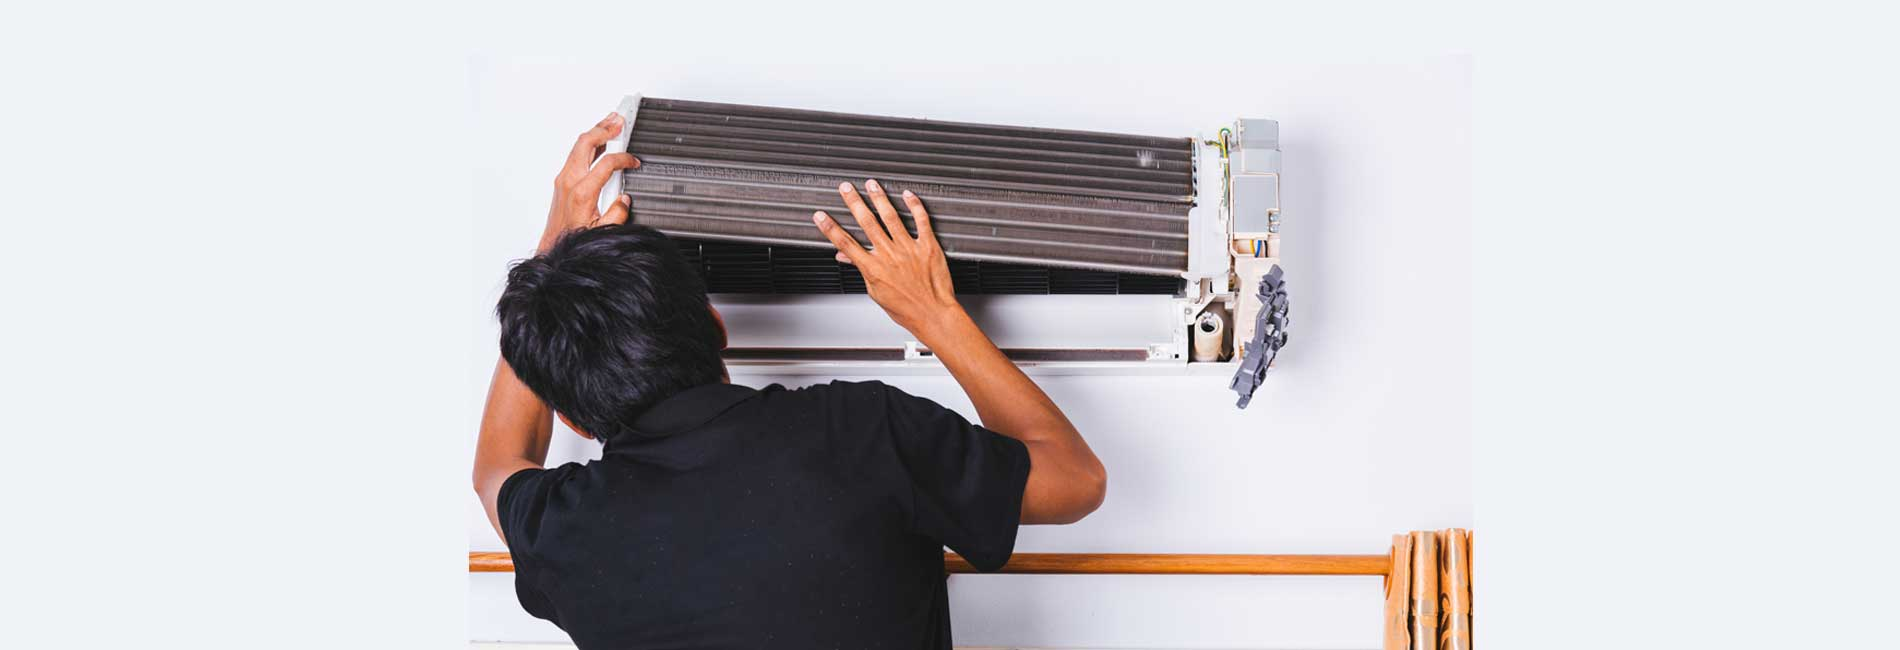 Split AC Uninstallation in Saidapet